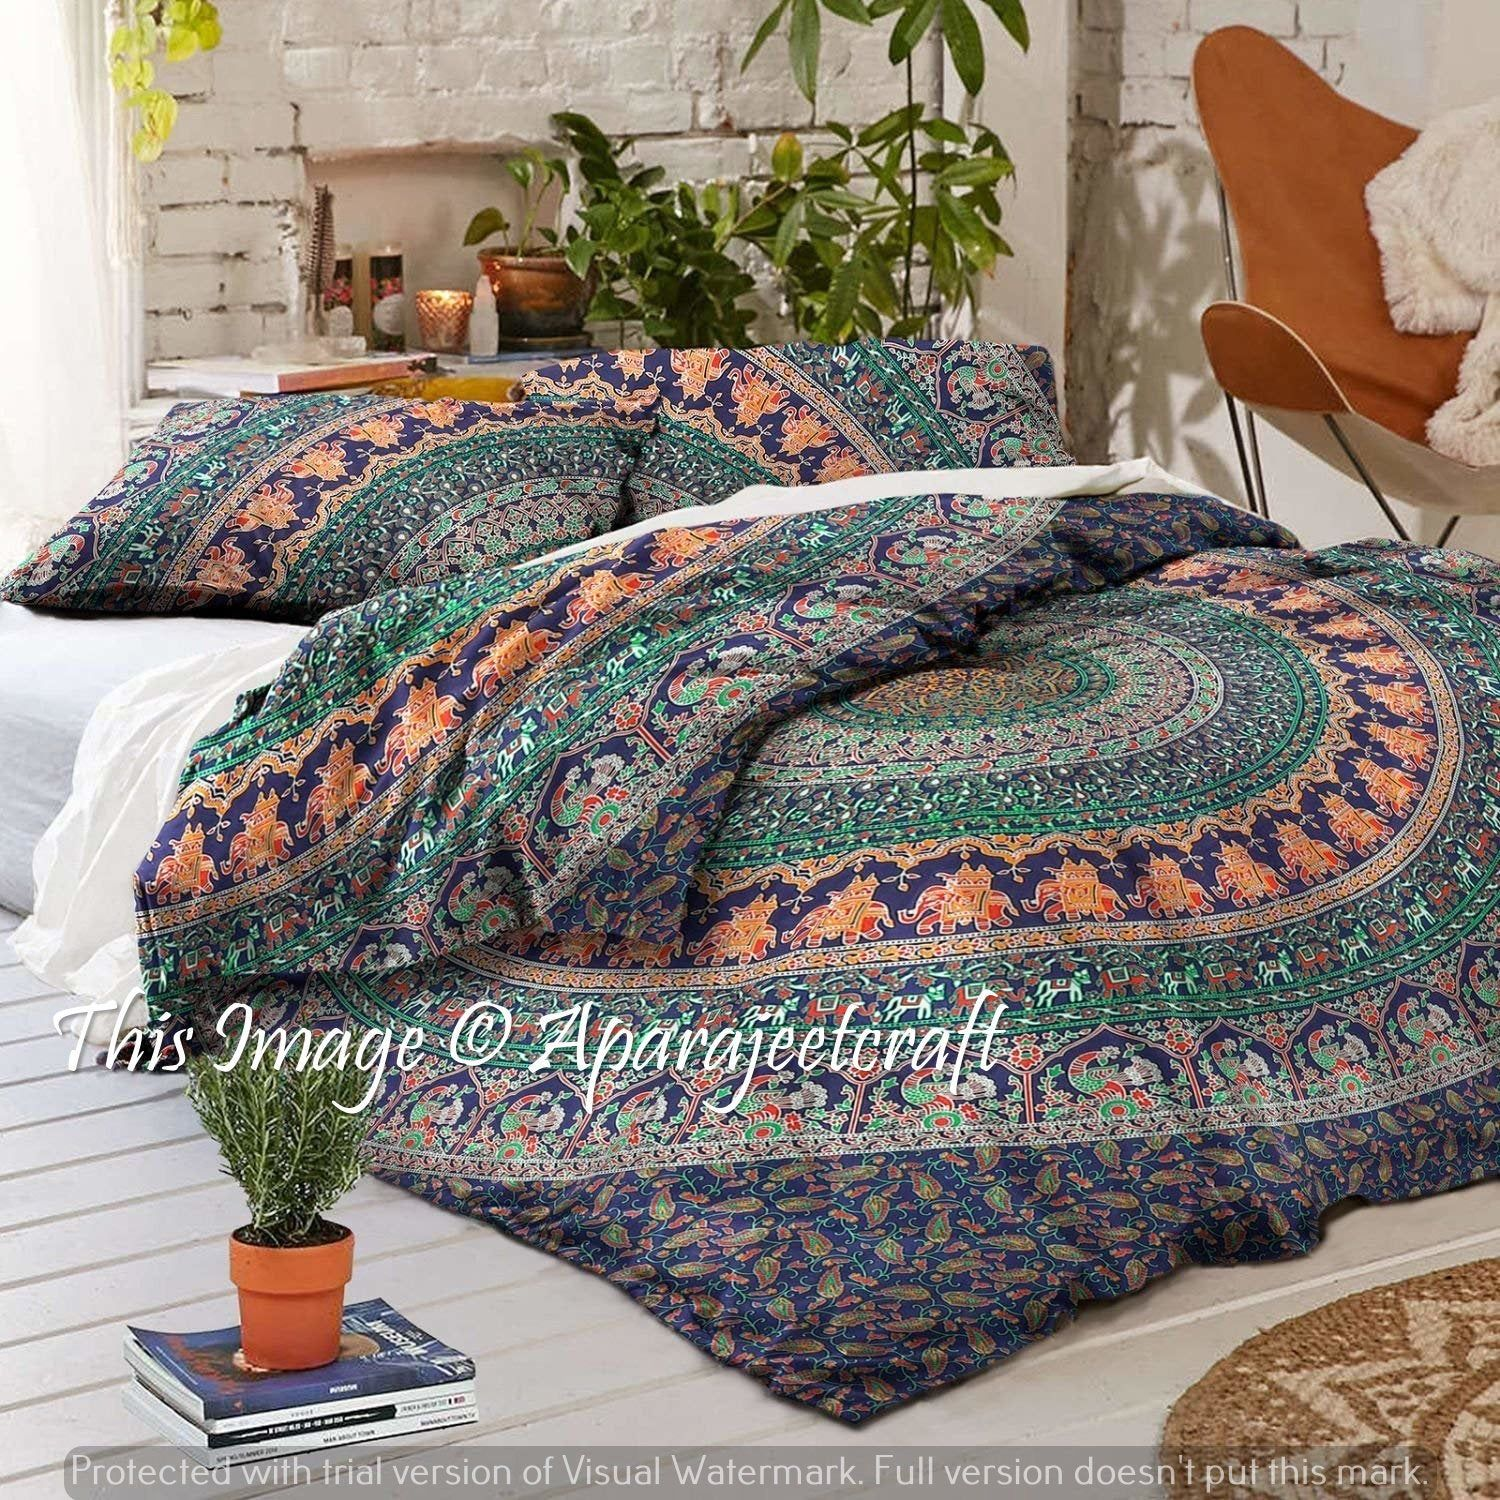 Queen Size Bed Cover Indian Mandala Tapestry Hippie Bohemian Bedding Set Throw